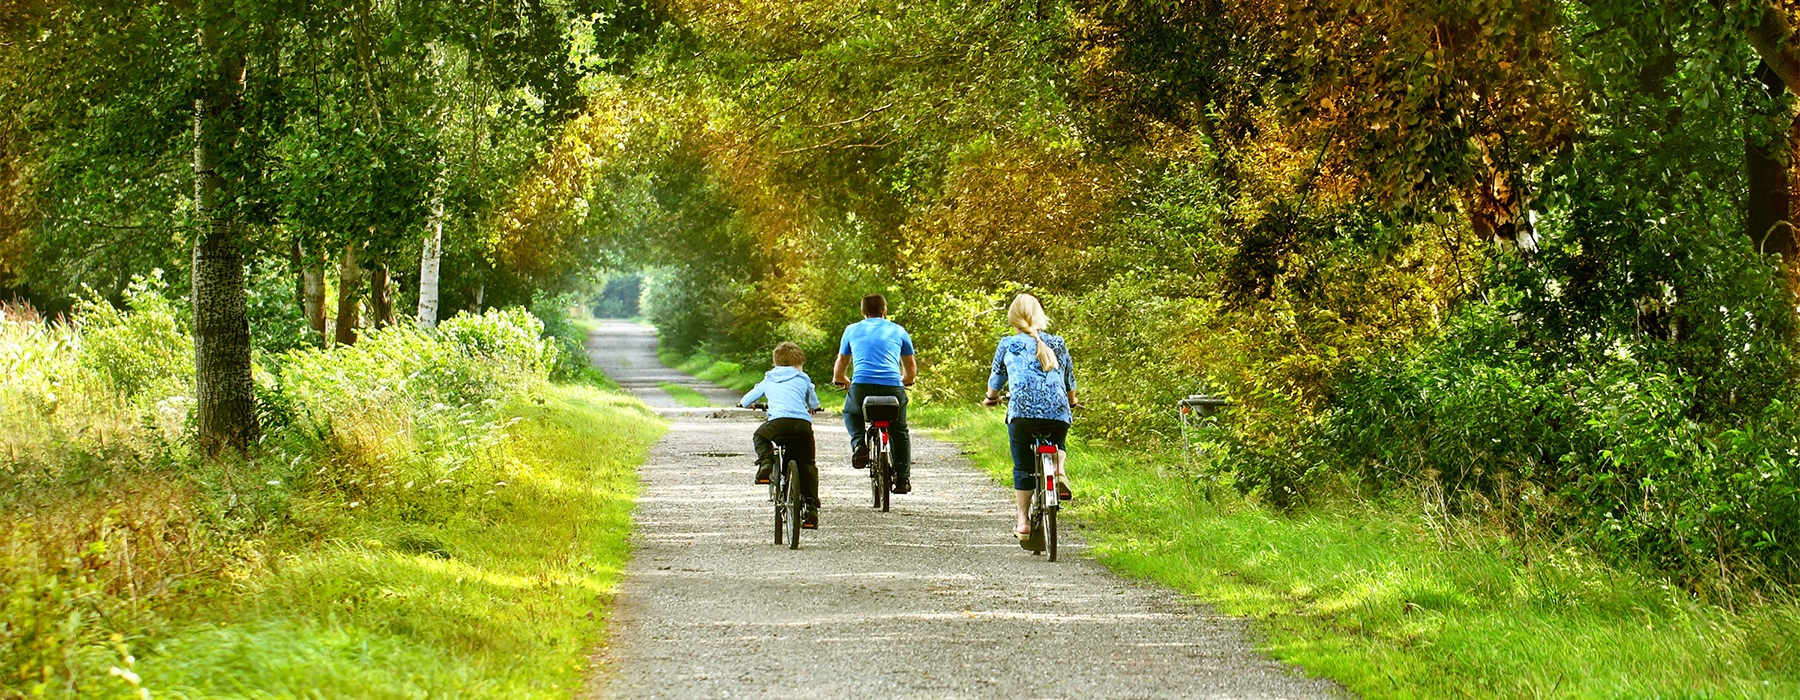 A family biking together down a gravel path through a wooded area.